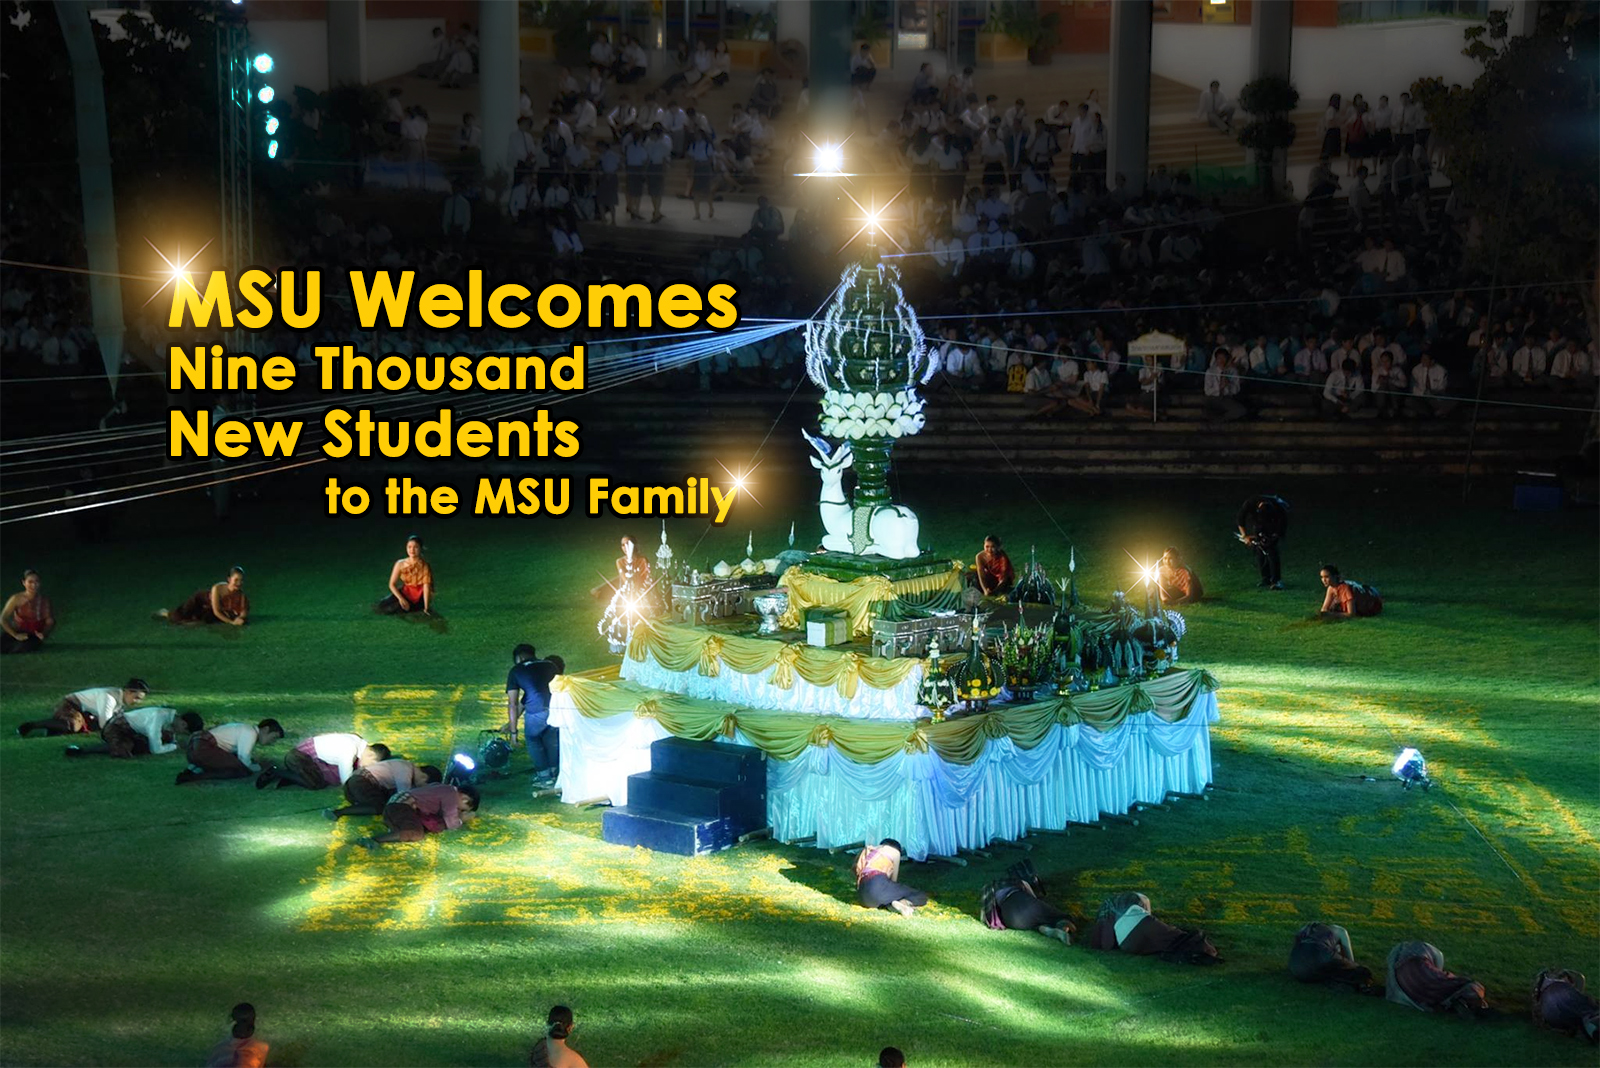 MSU Welcomes Nine Thousand New Students to the MSU Family